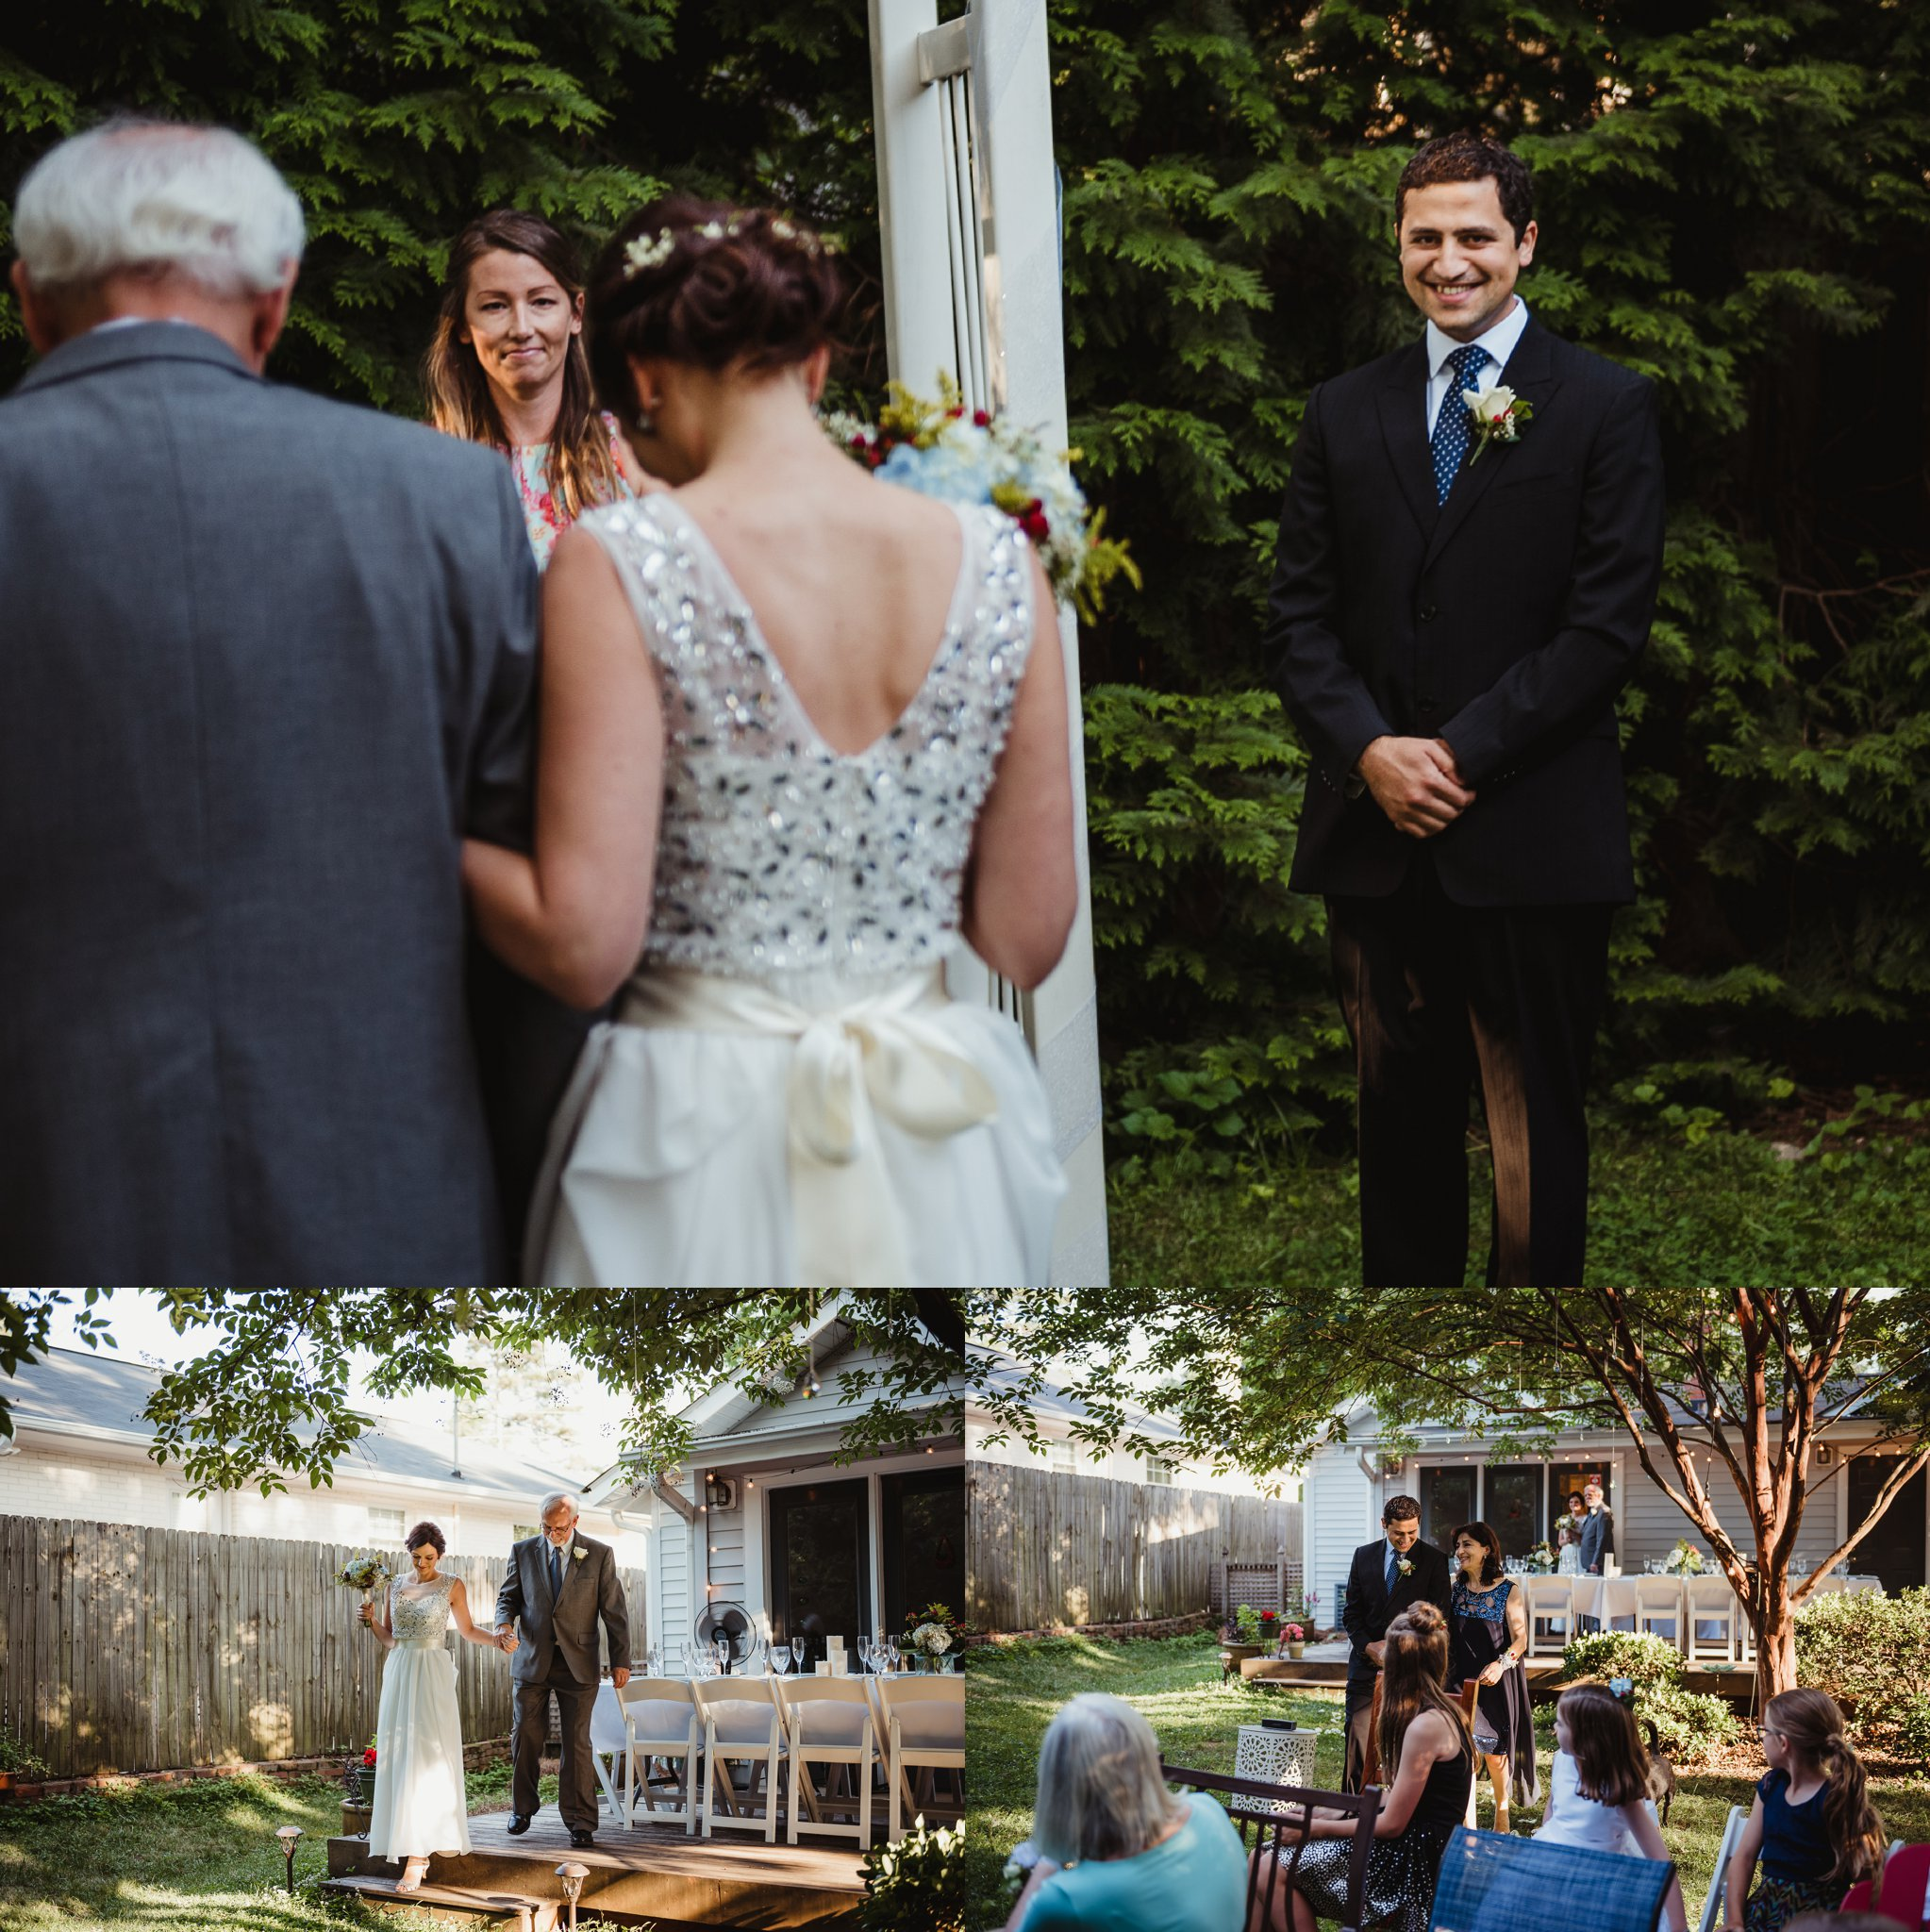 The bride and groom walked down the aisle in their backyard in Raleigh to a ceremony officiated by their friend, pictures by Rose Trail Images.